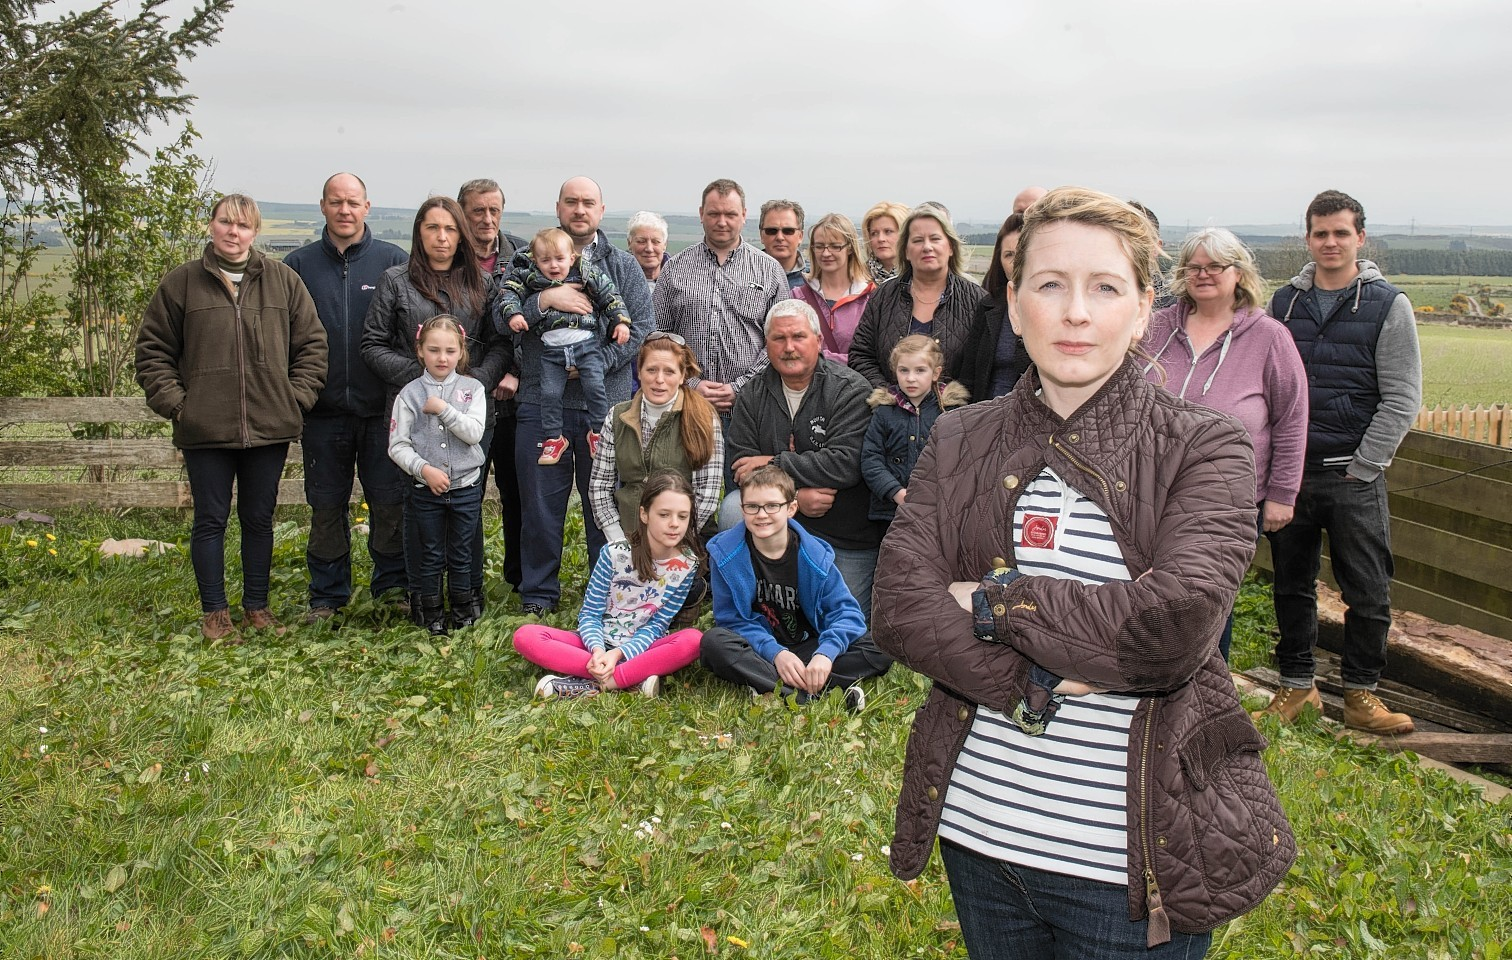 Local residents have raised objections